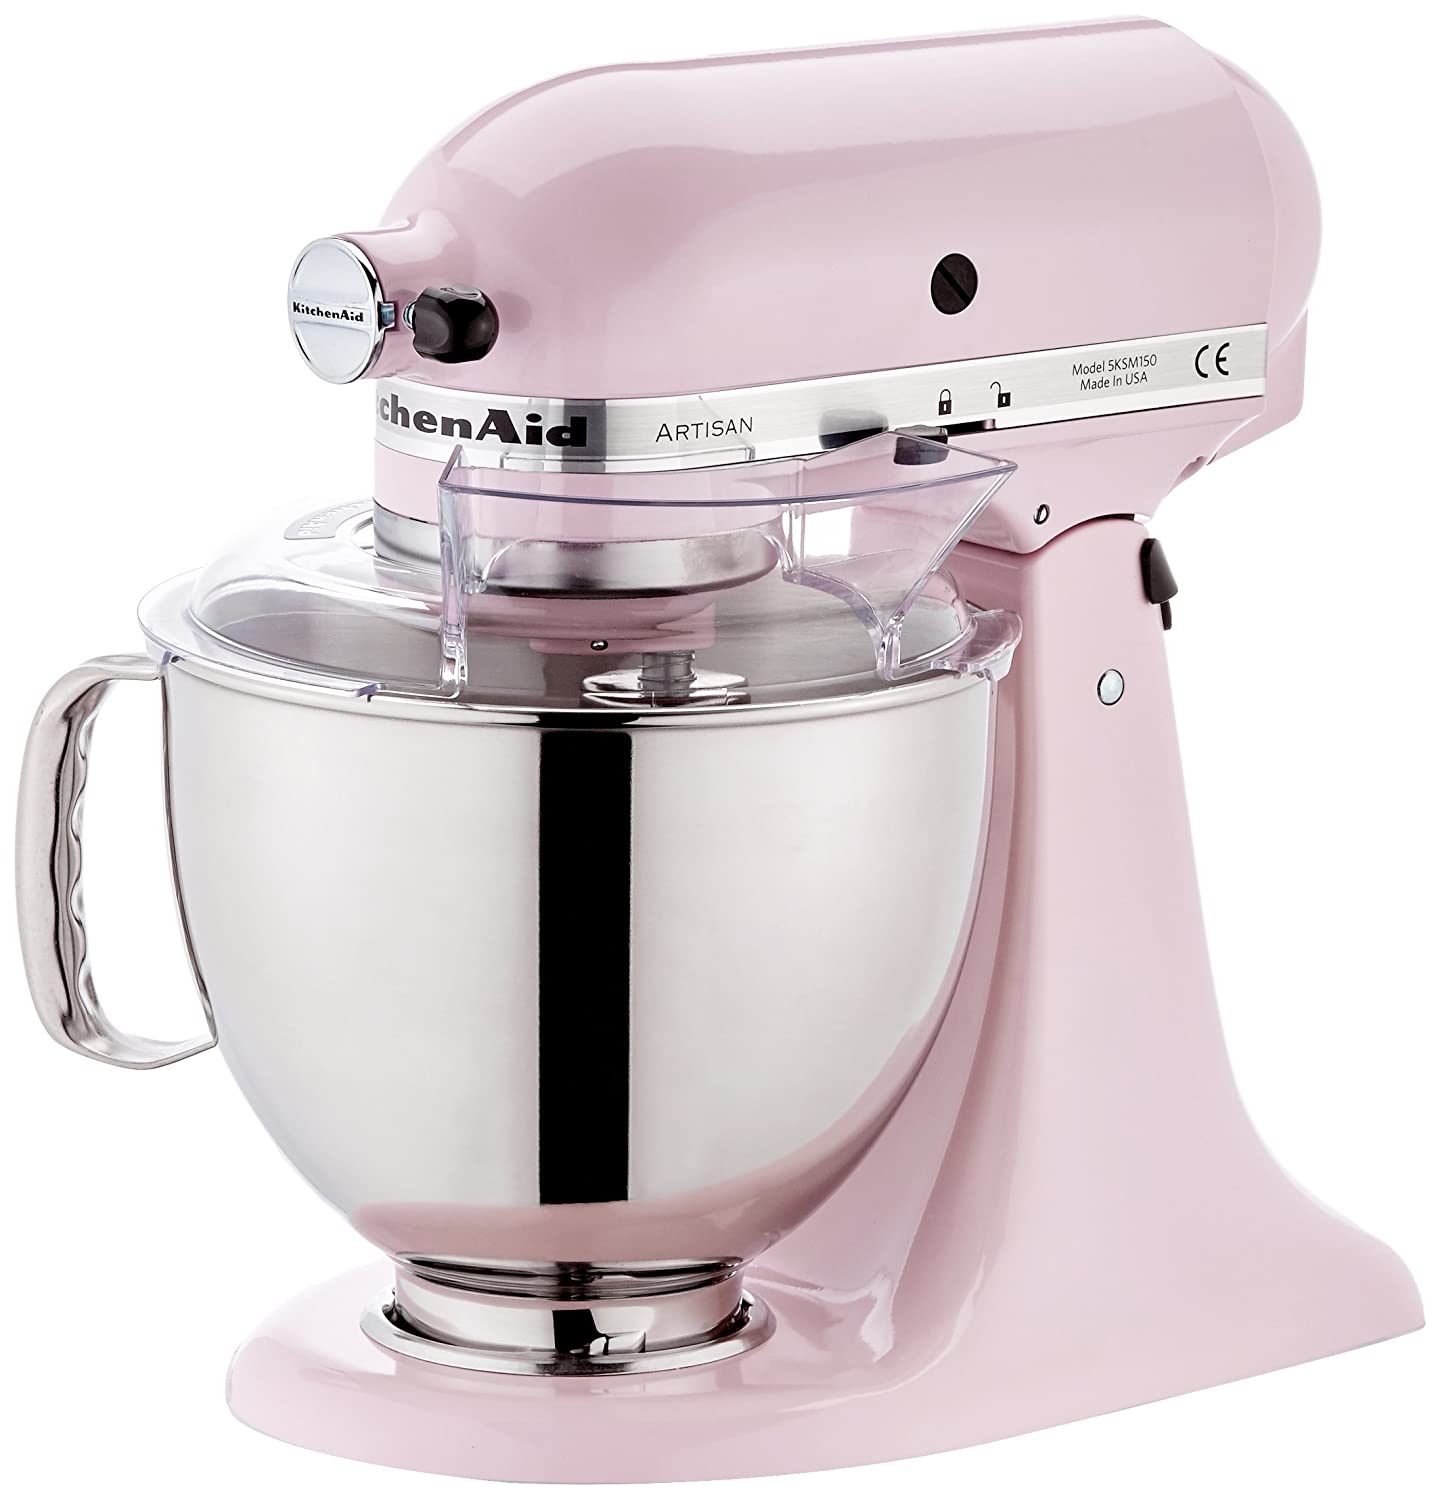 Kitchenaid pink food processor - Kitchenaid Pink Food Processor 25